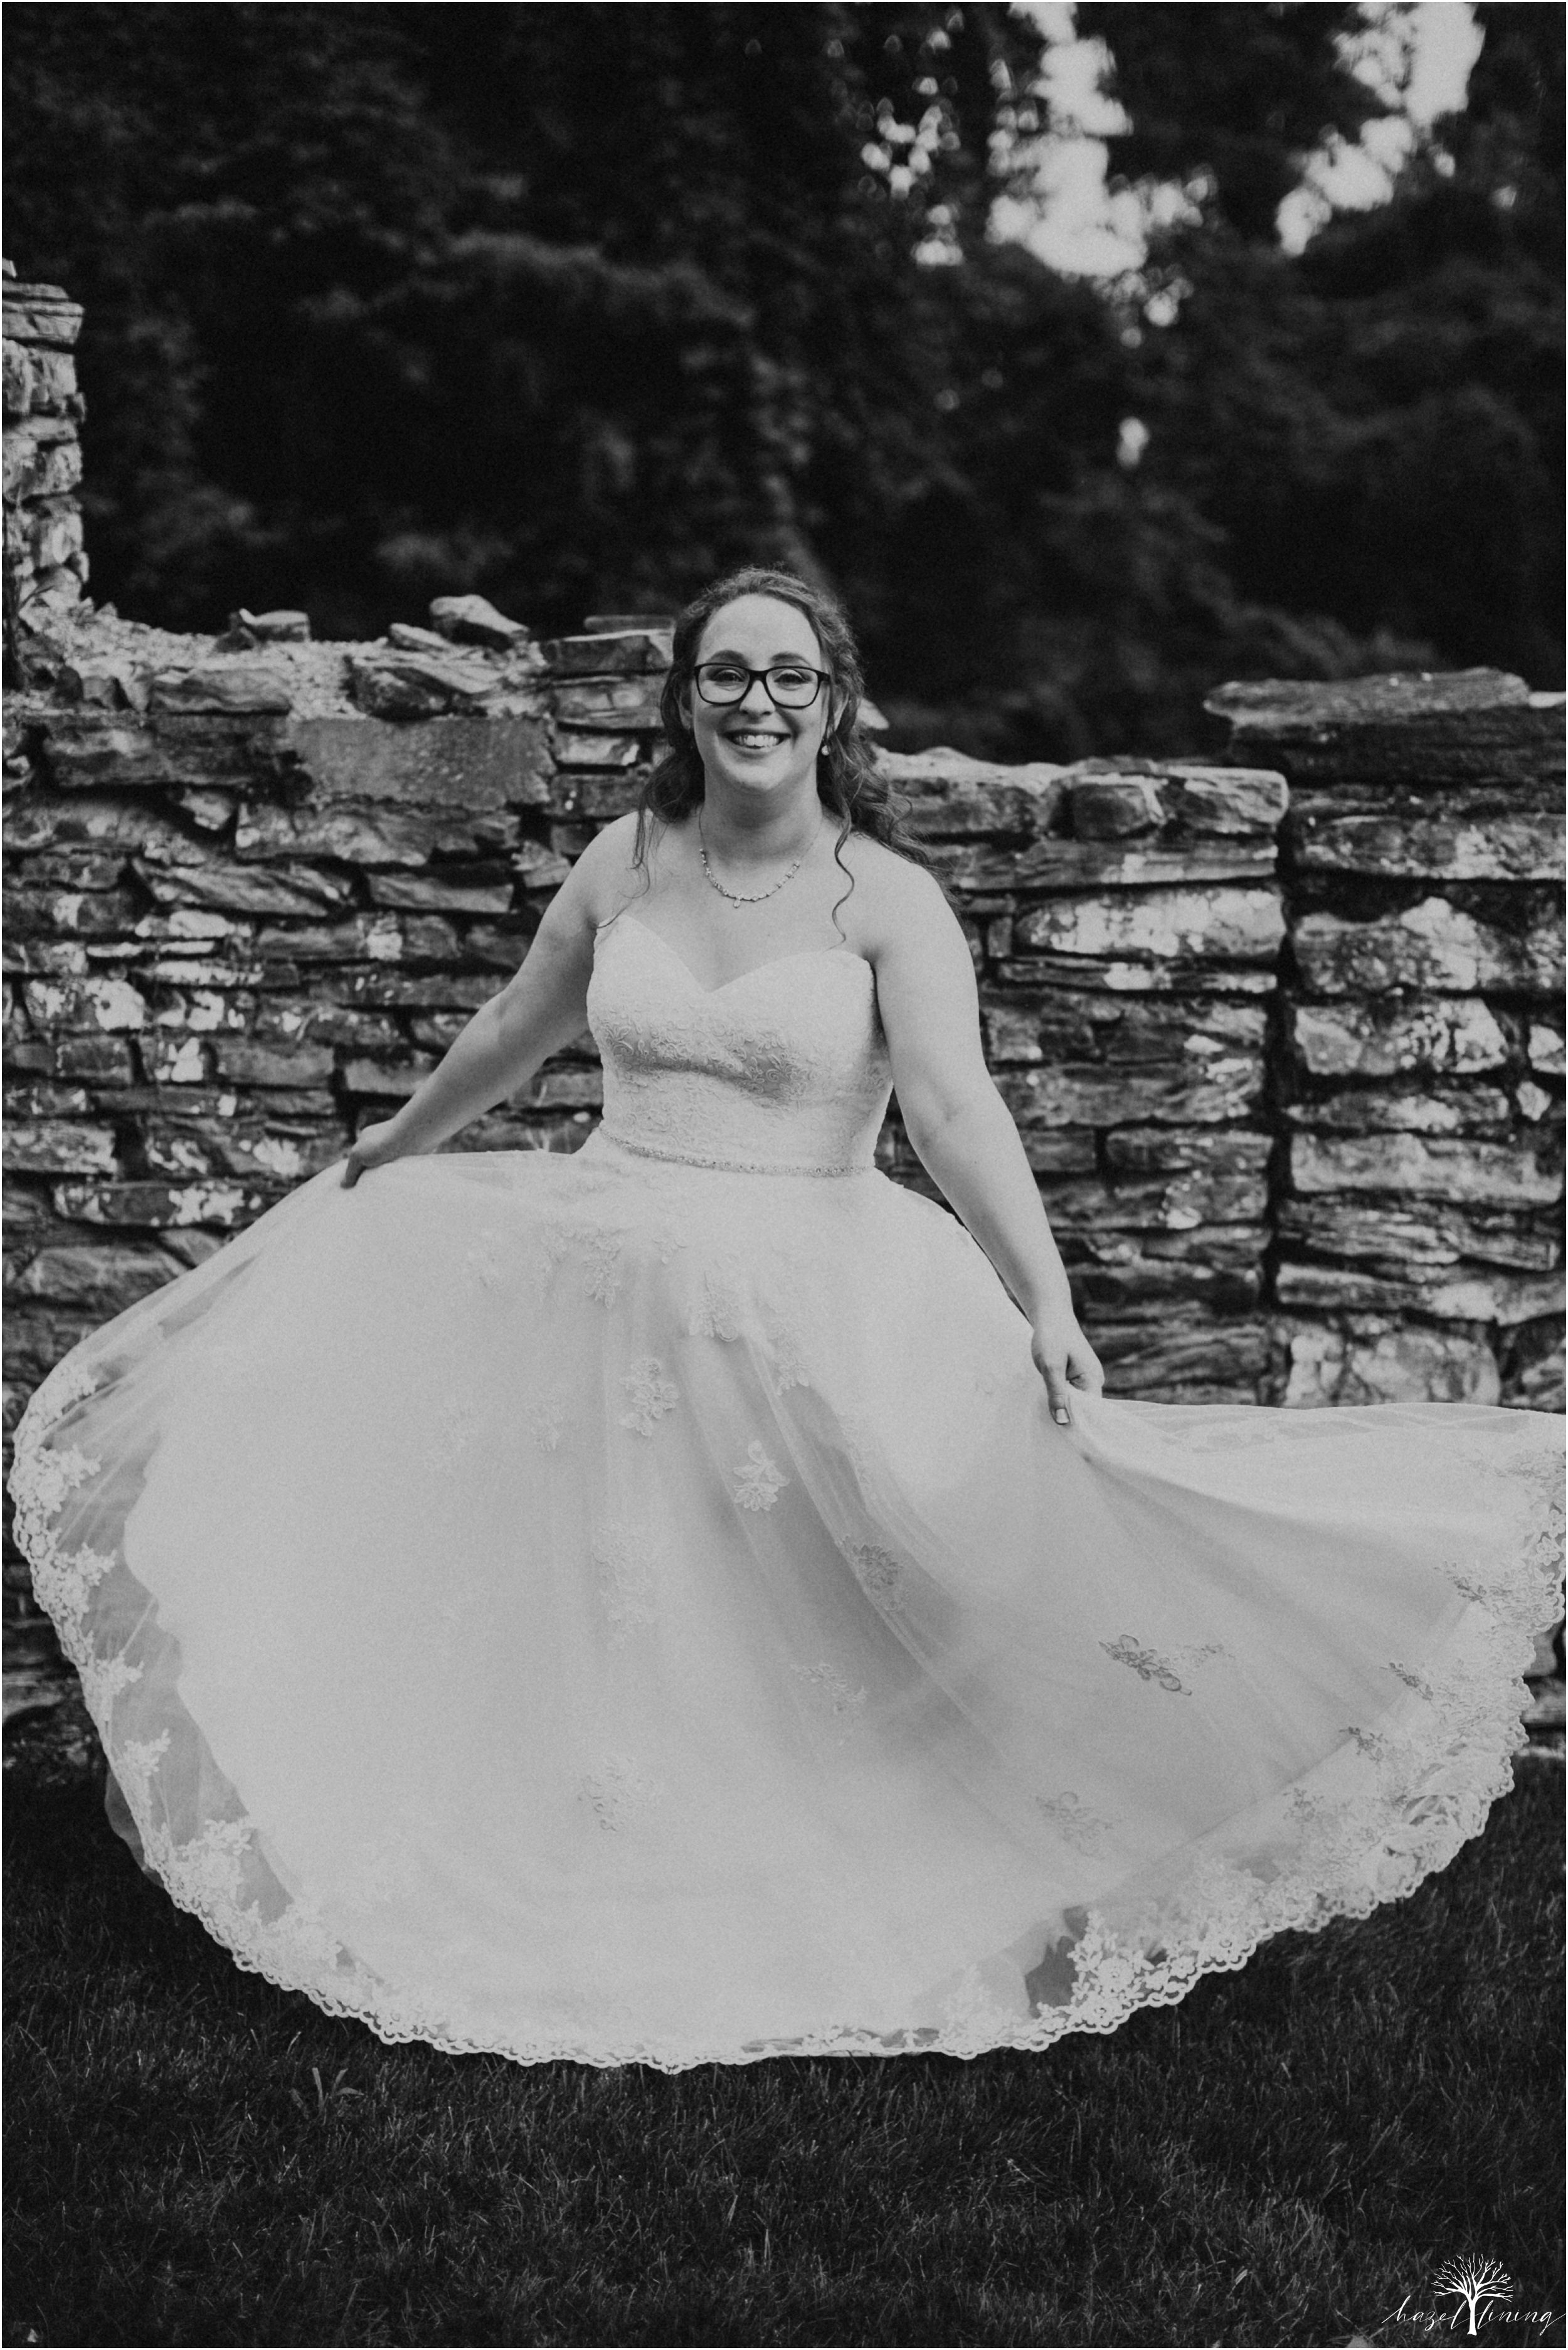 laura-zach-mccaskill-harmony-hall-lebanon-valley-college-summer-wedding-hazel-lining-photography-destination-elopement-wedding-engagement-photography_0155.jpg